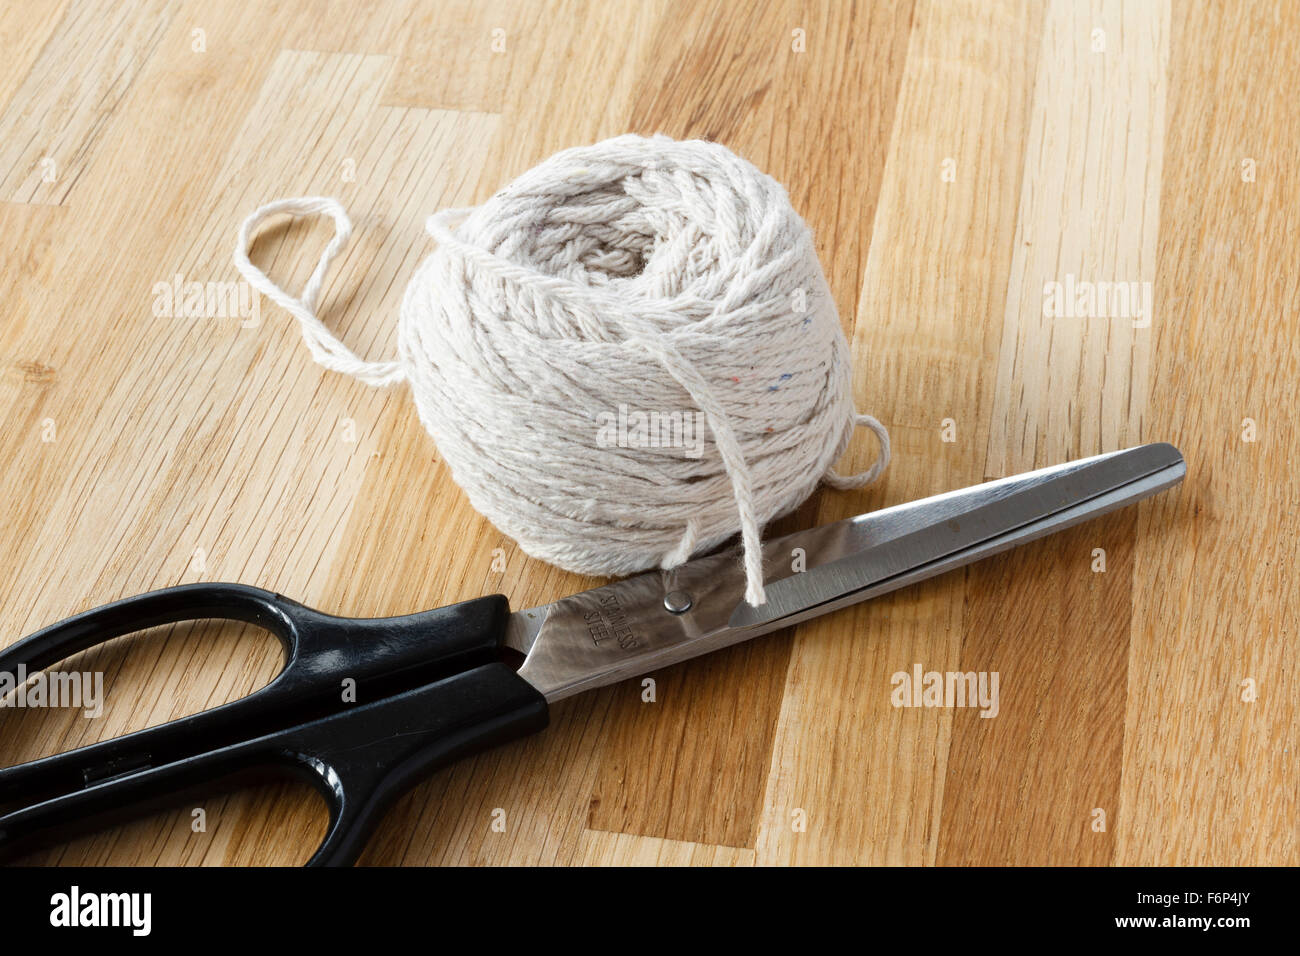 Ball of string and scissors on wooden table - Stock Image